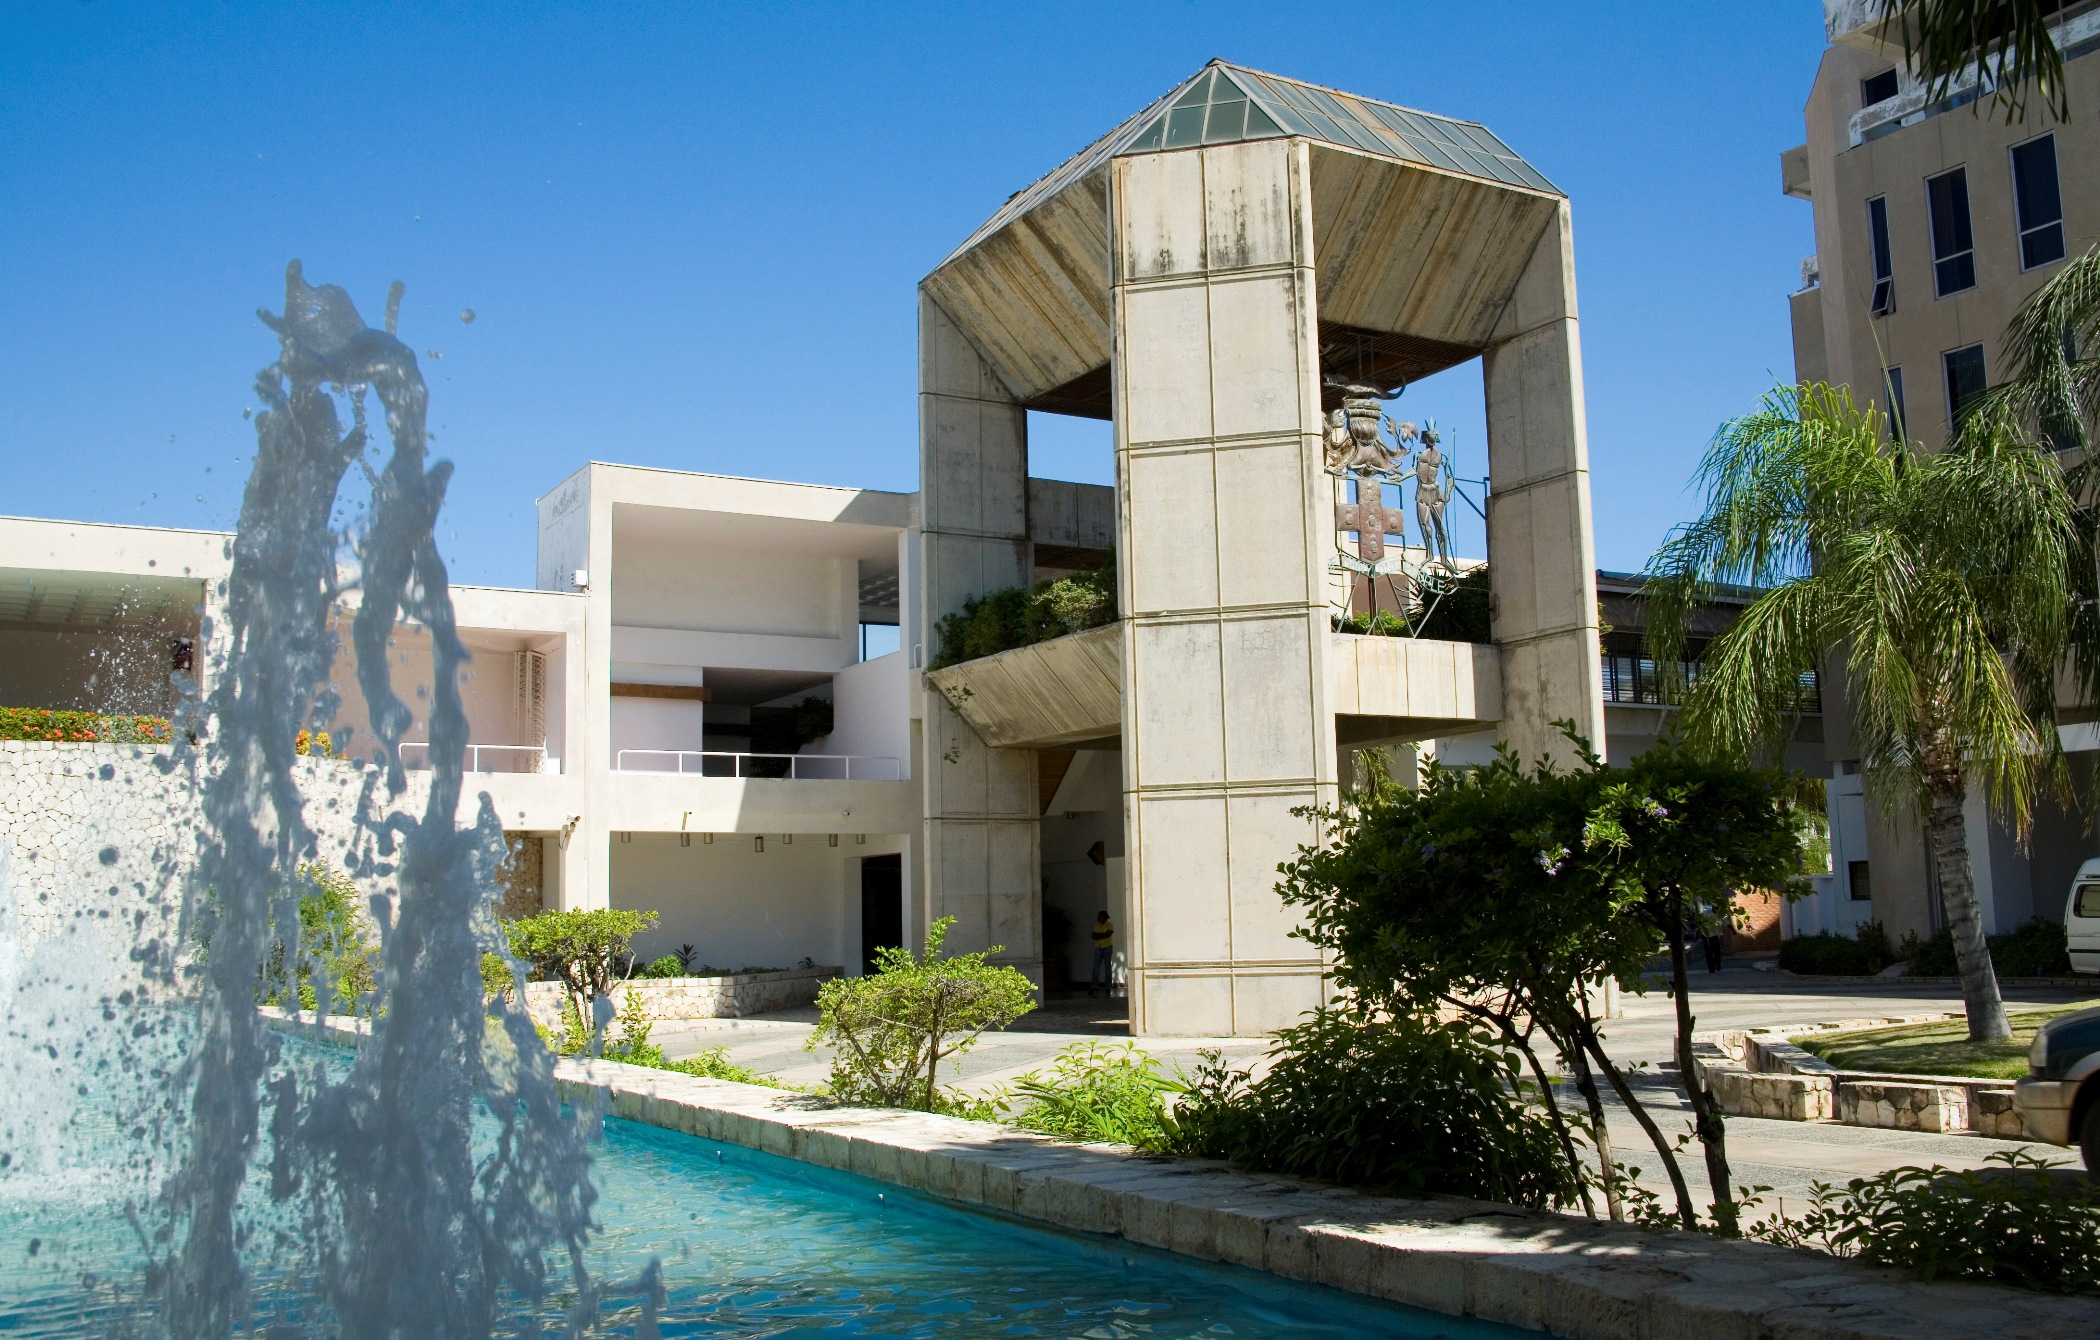 Architectural Des Of Houses In Jamaica Diy